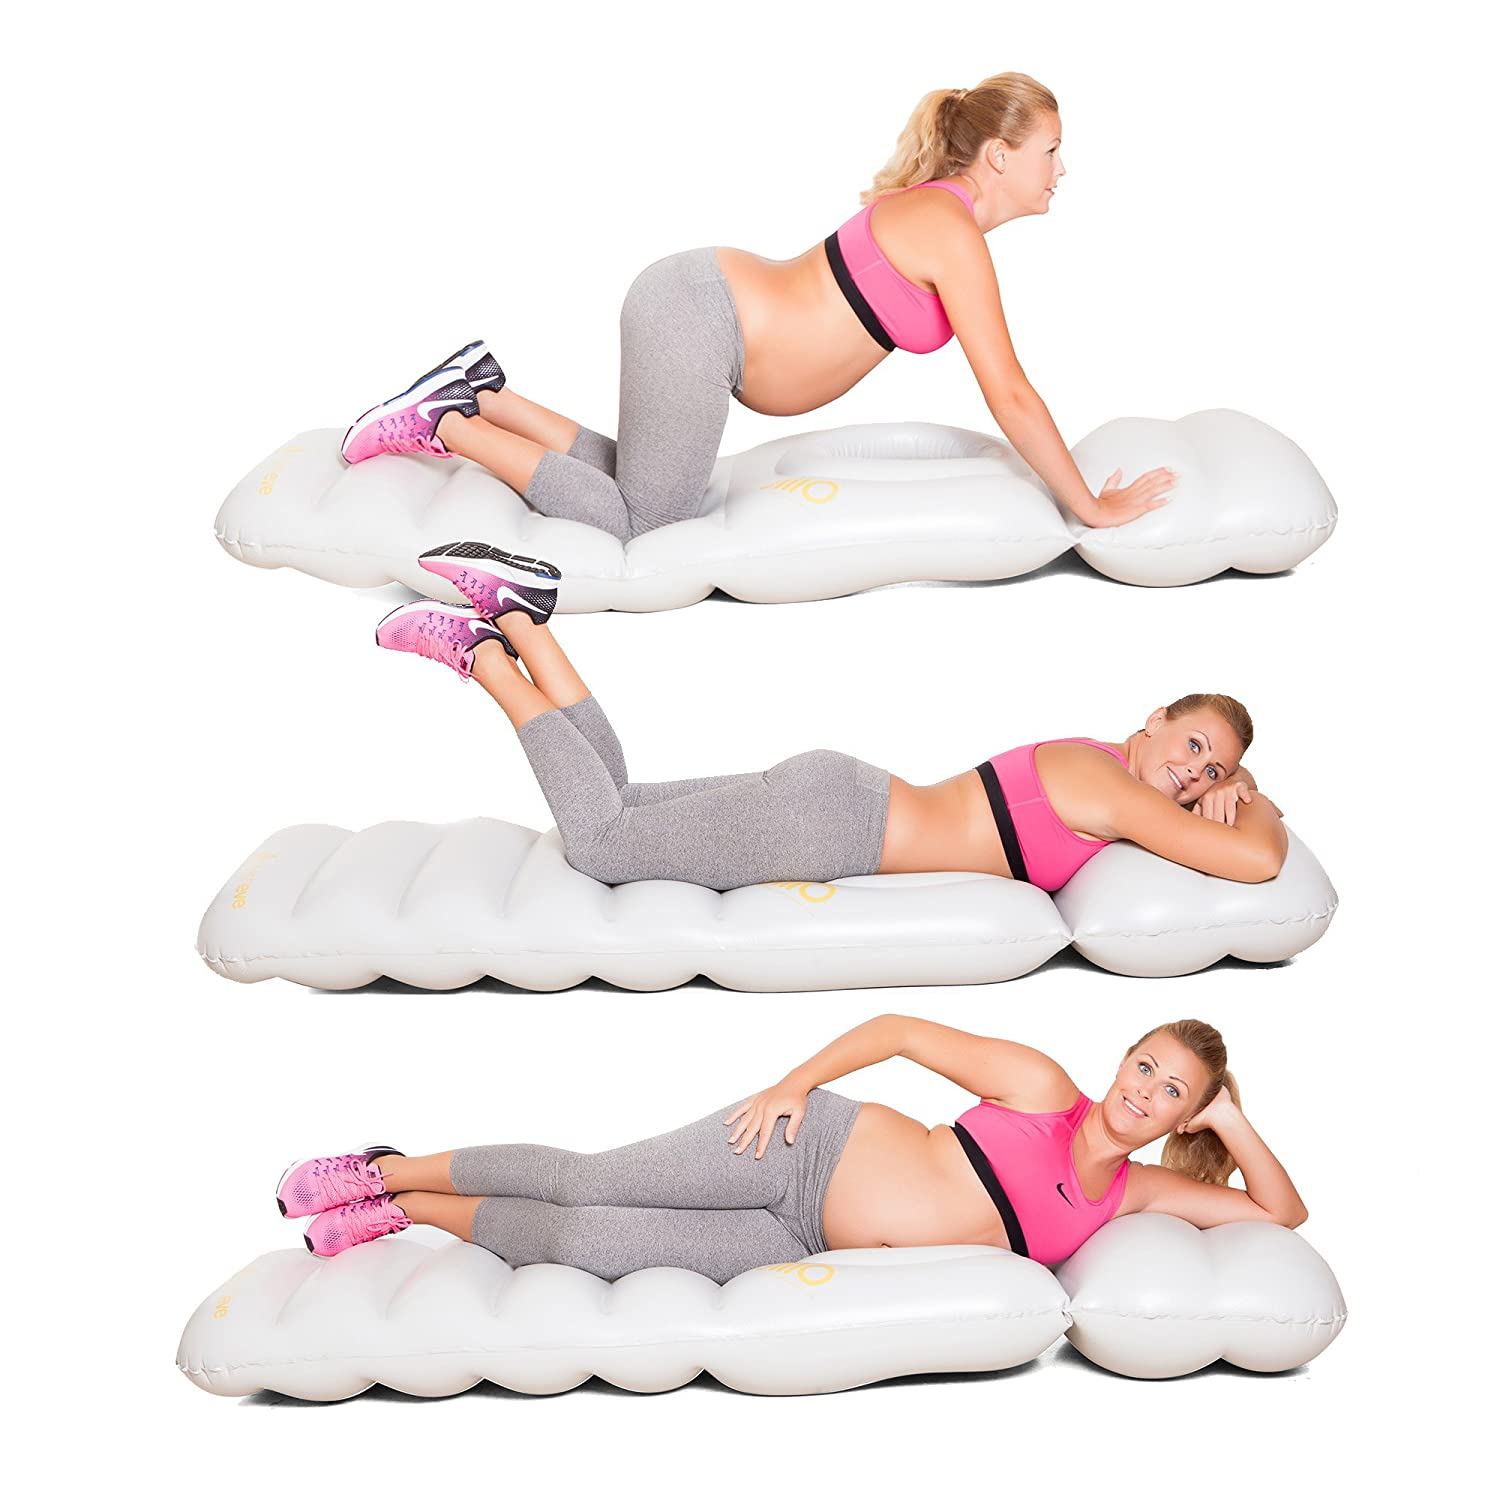 JlllO - The Inflatable Full Body Maternity Pillow with a Hole for Baby Bumps to Lie on Your Tummy During Pregnancy Stylish Eve